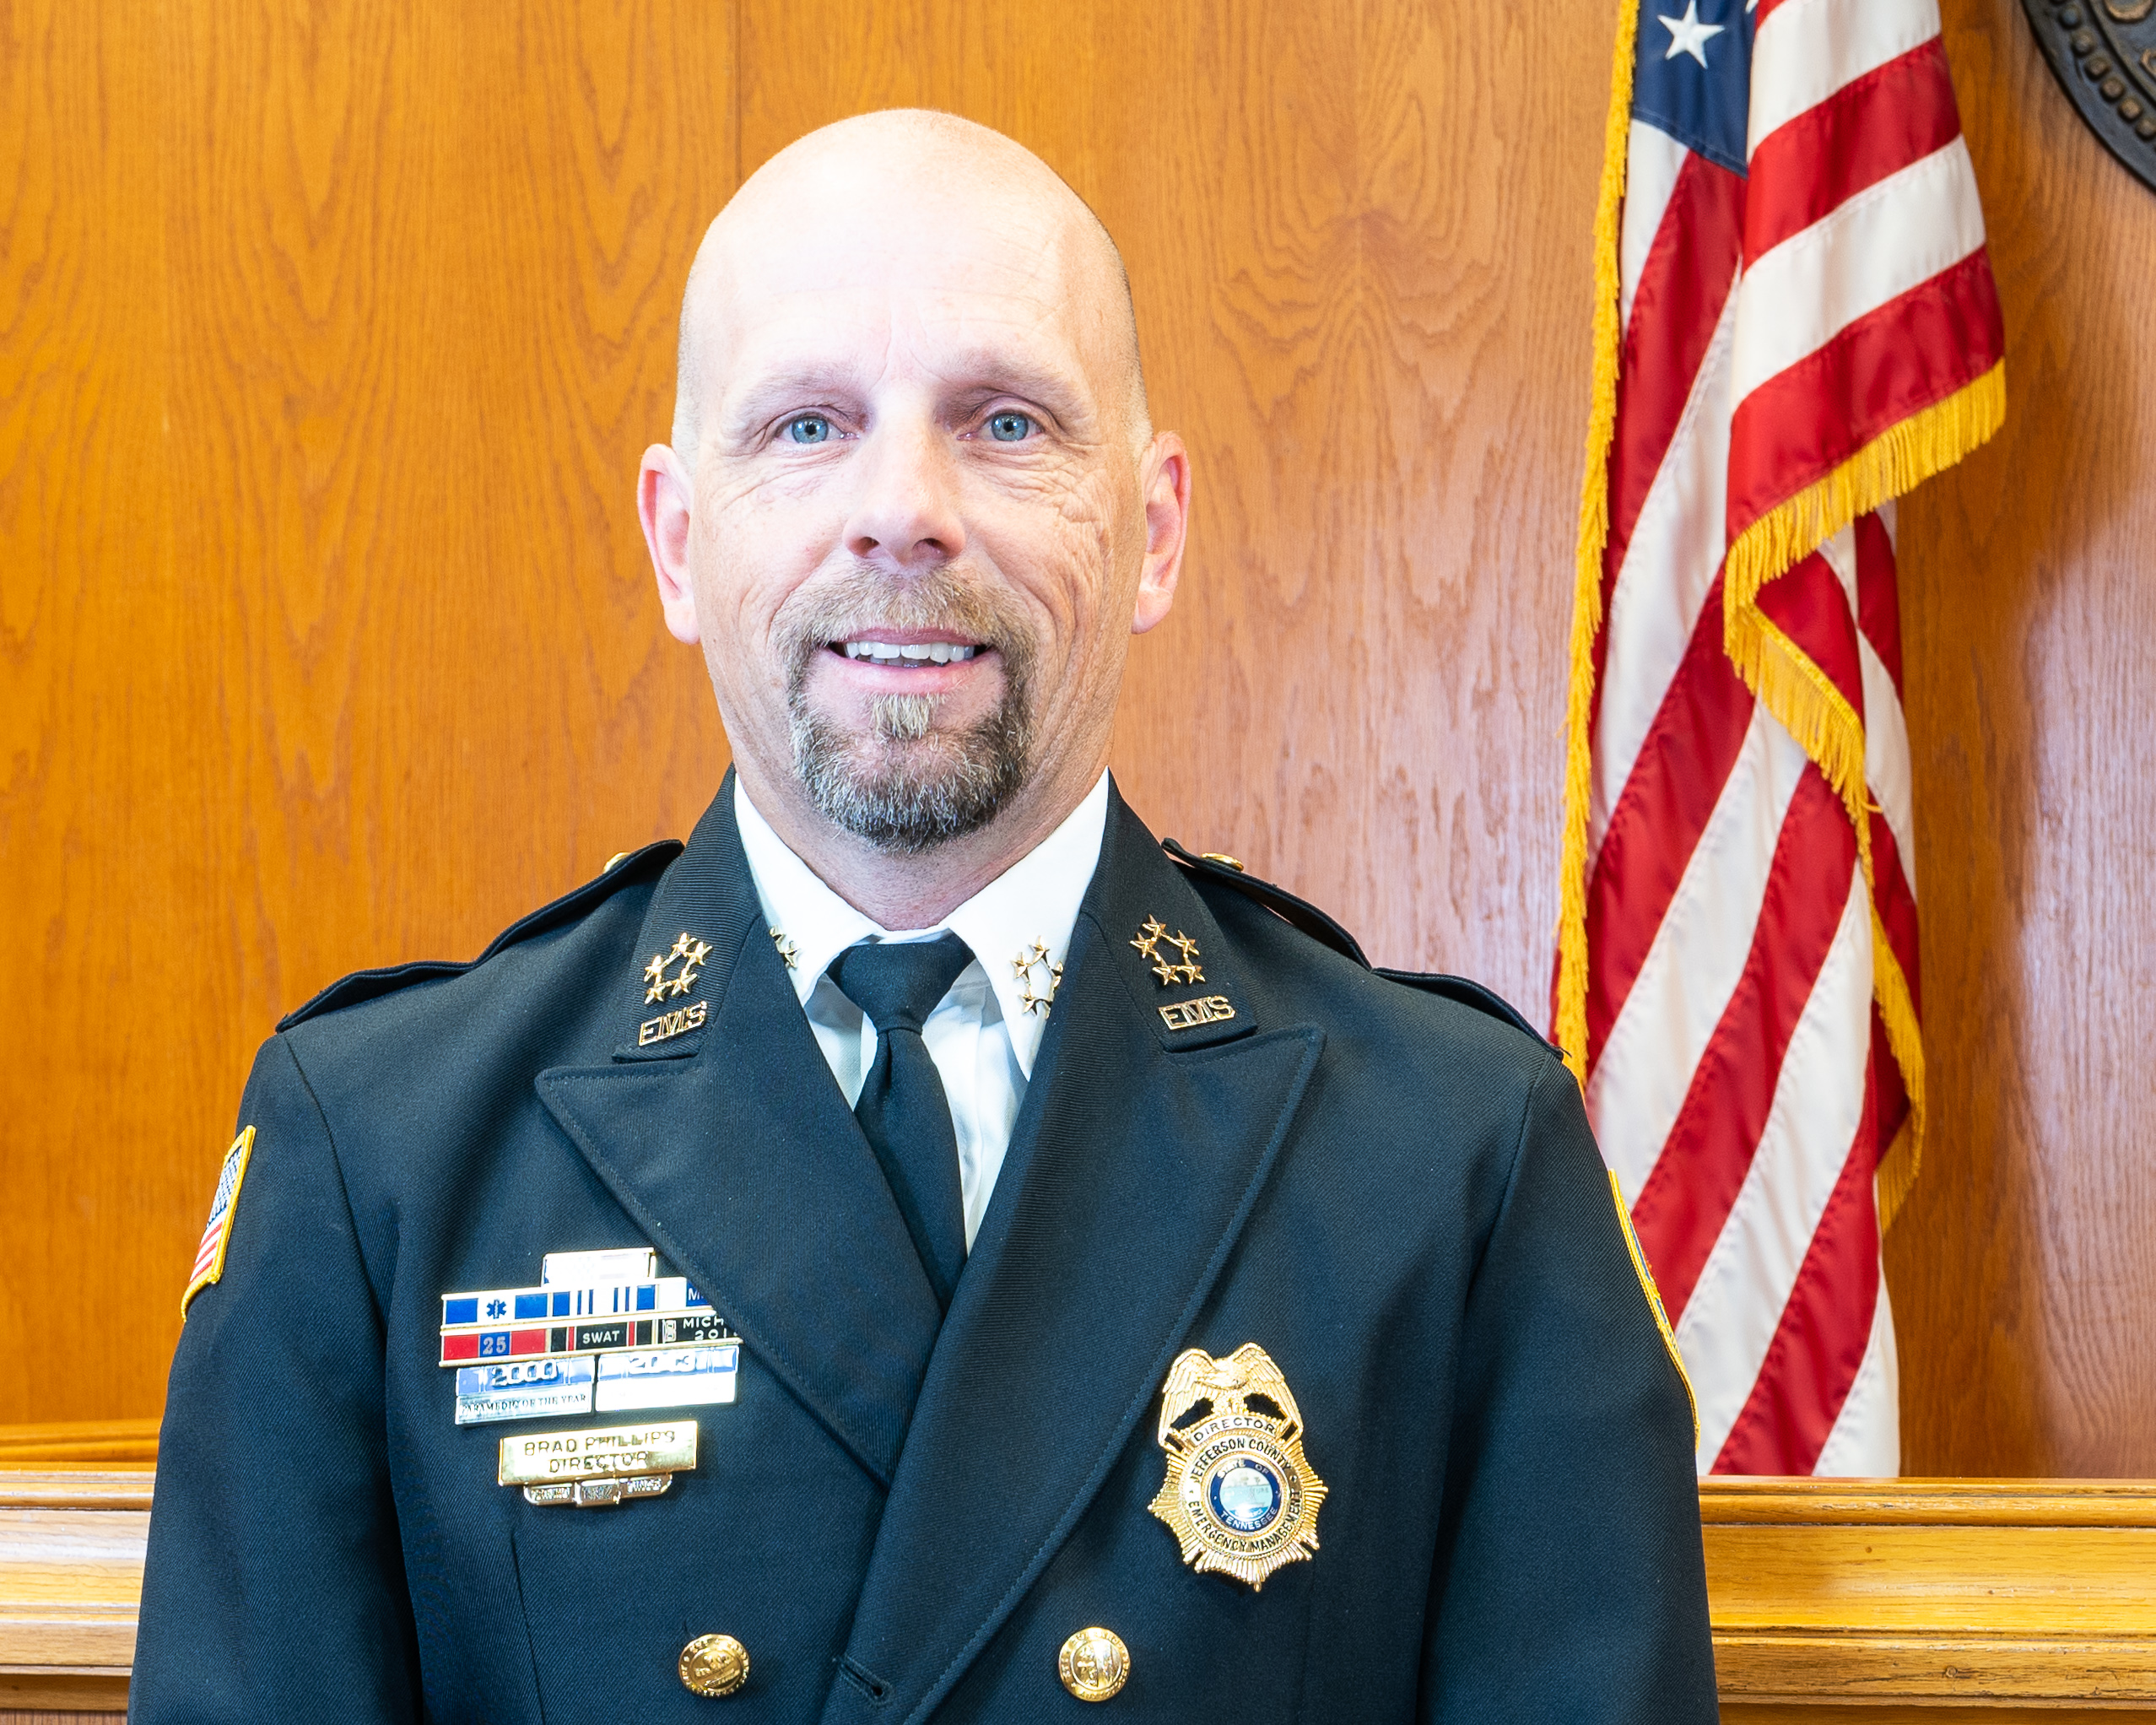 Emergency Medical Services Director, Brad Phillips, Jefferson County, TN